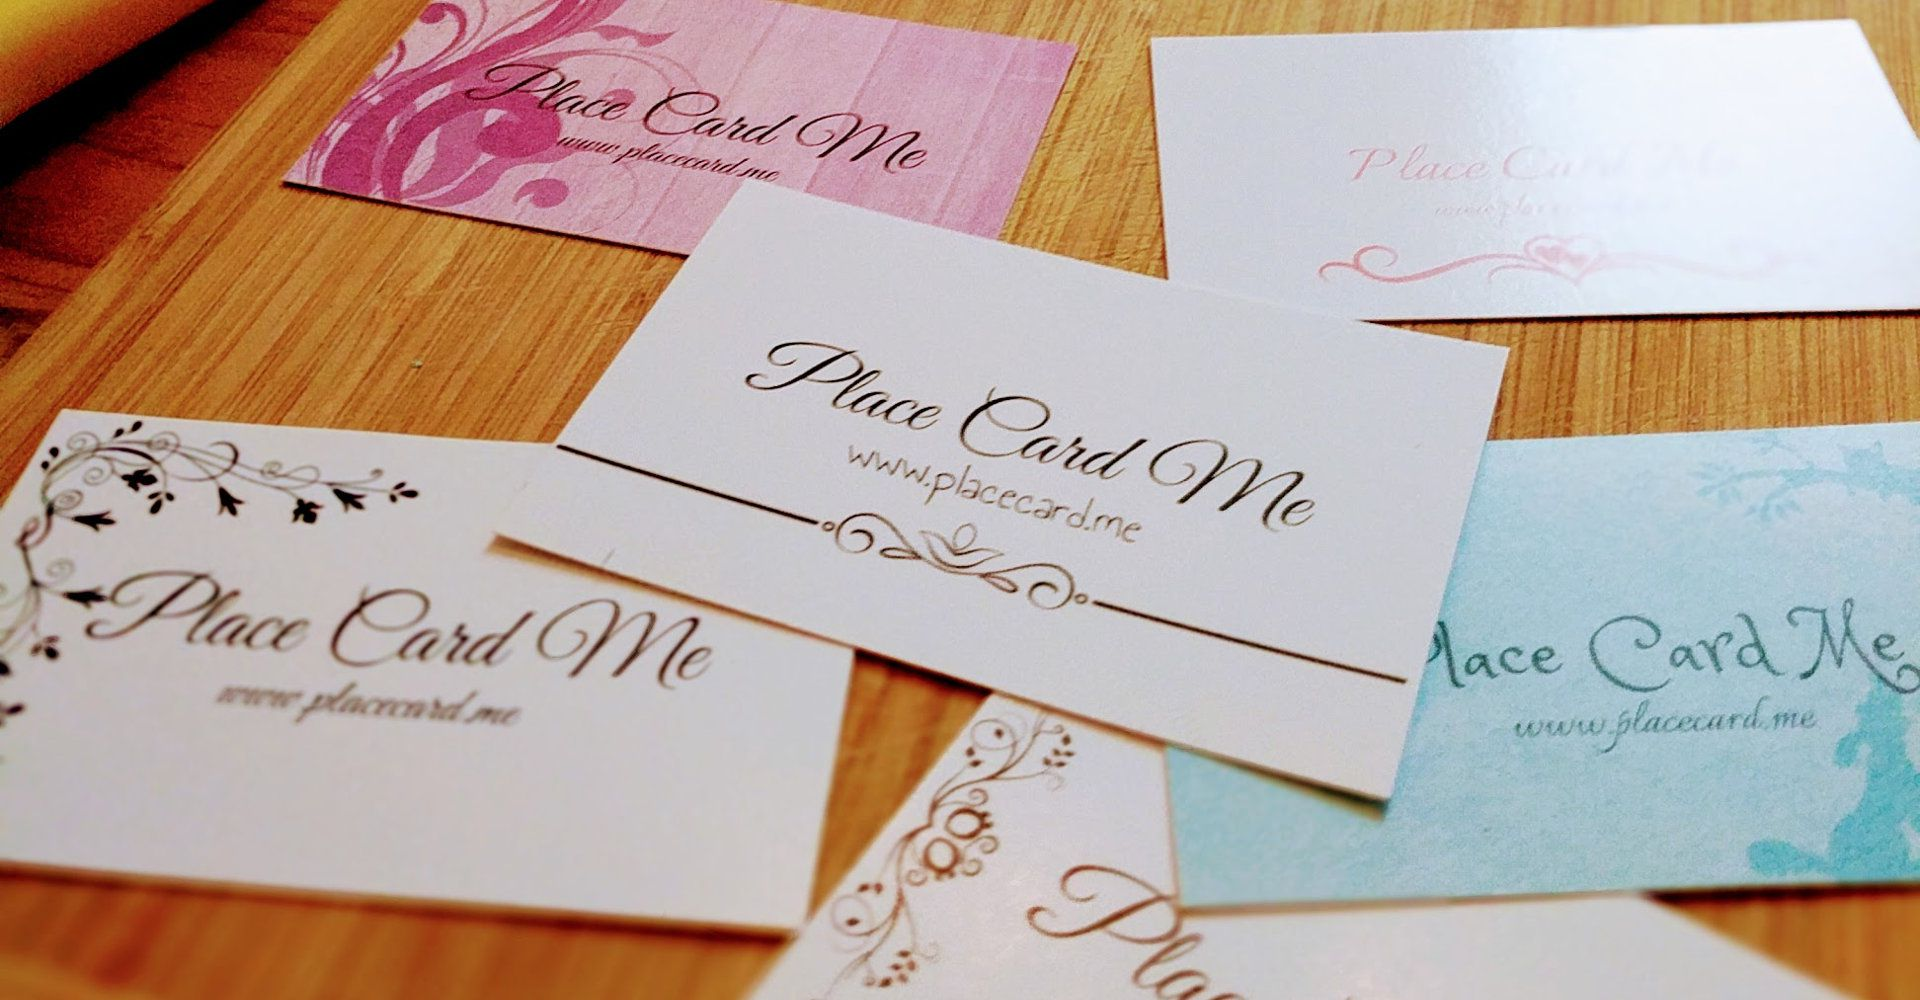 006 Amazing Wedding Name Card Template Image  Templates For Table Place FreeFull